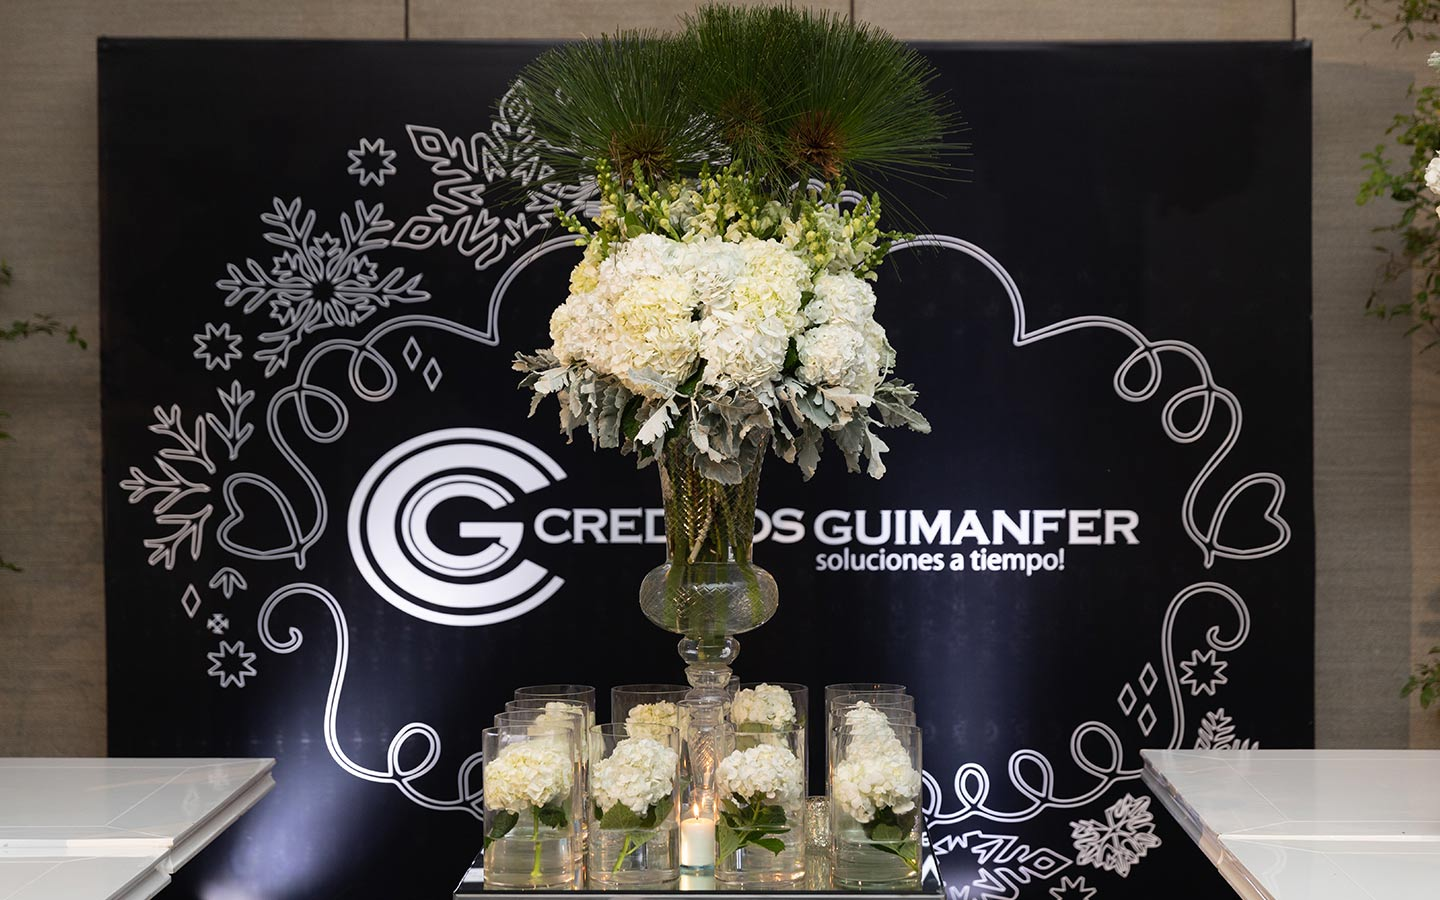 Evento Corporativo Creditos Guimanfer